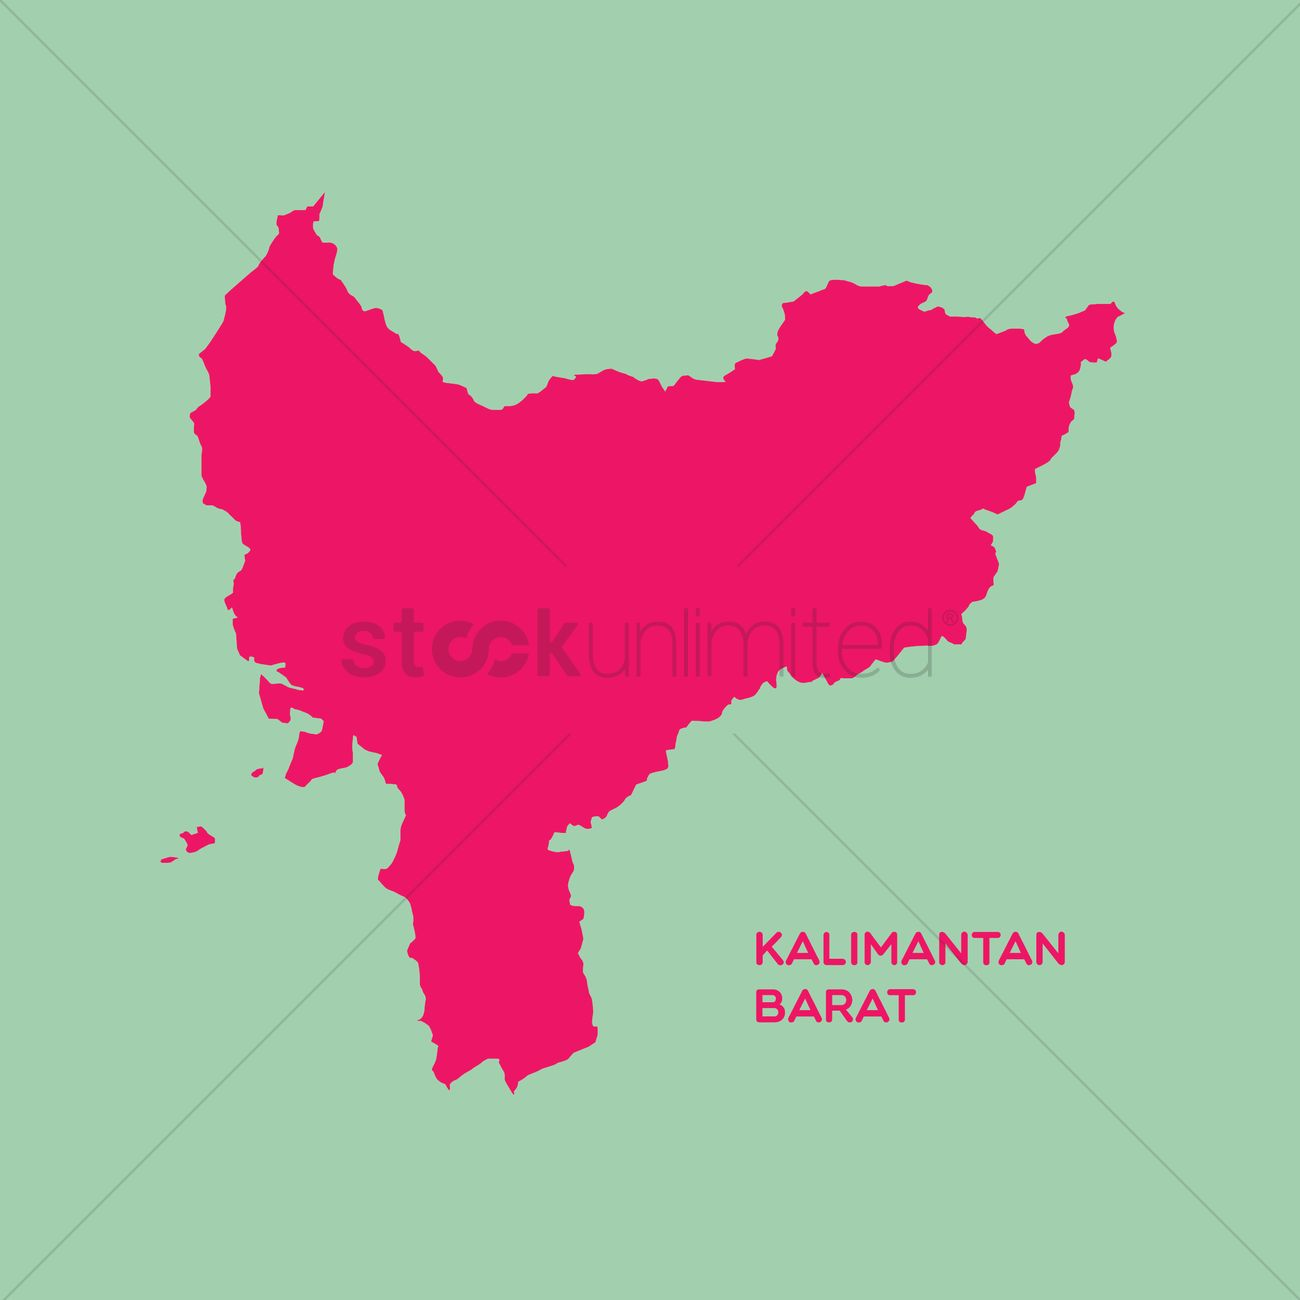 map of kalimantan barat vector image 1480436 stockunlimited map of kalimantan barat vector image